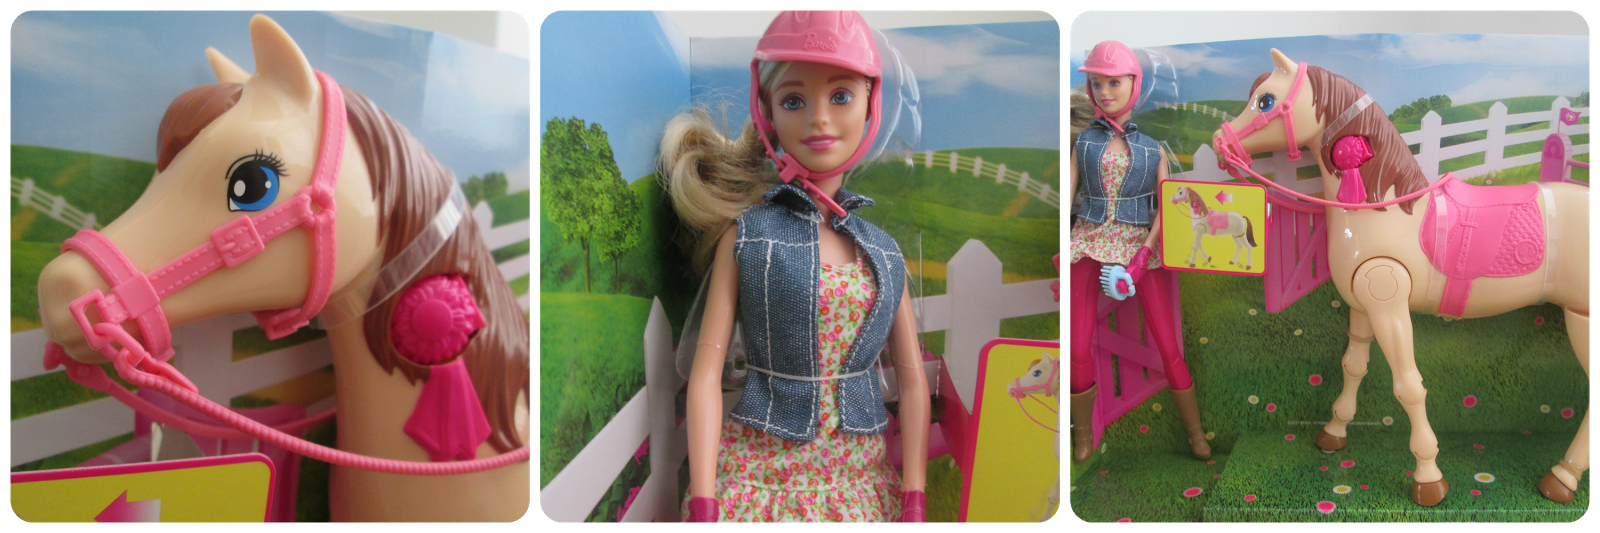 Barbie Saddle n' Ride fashion